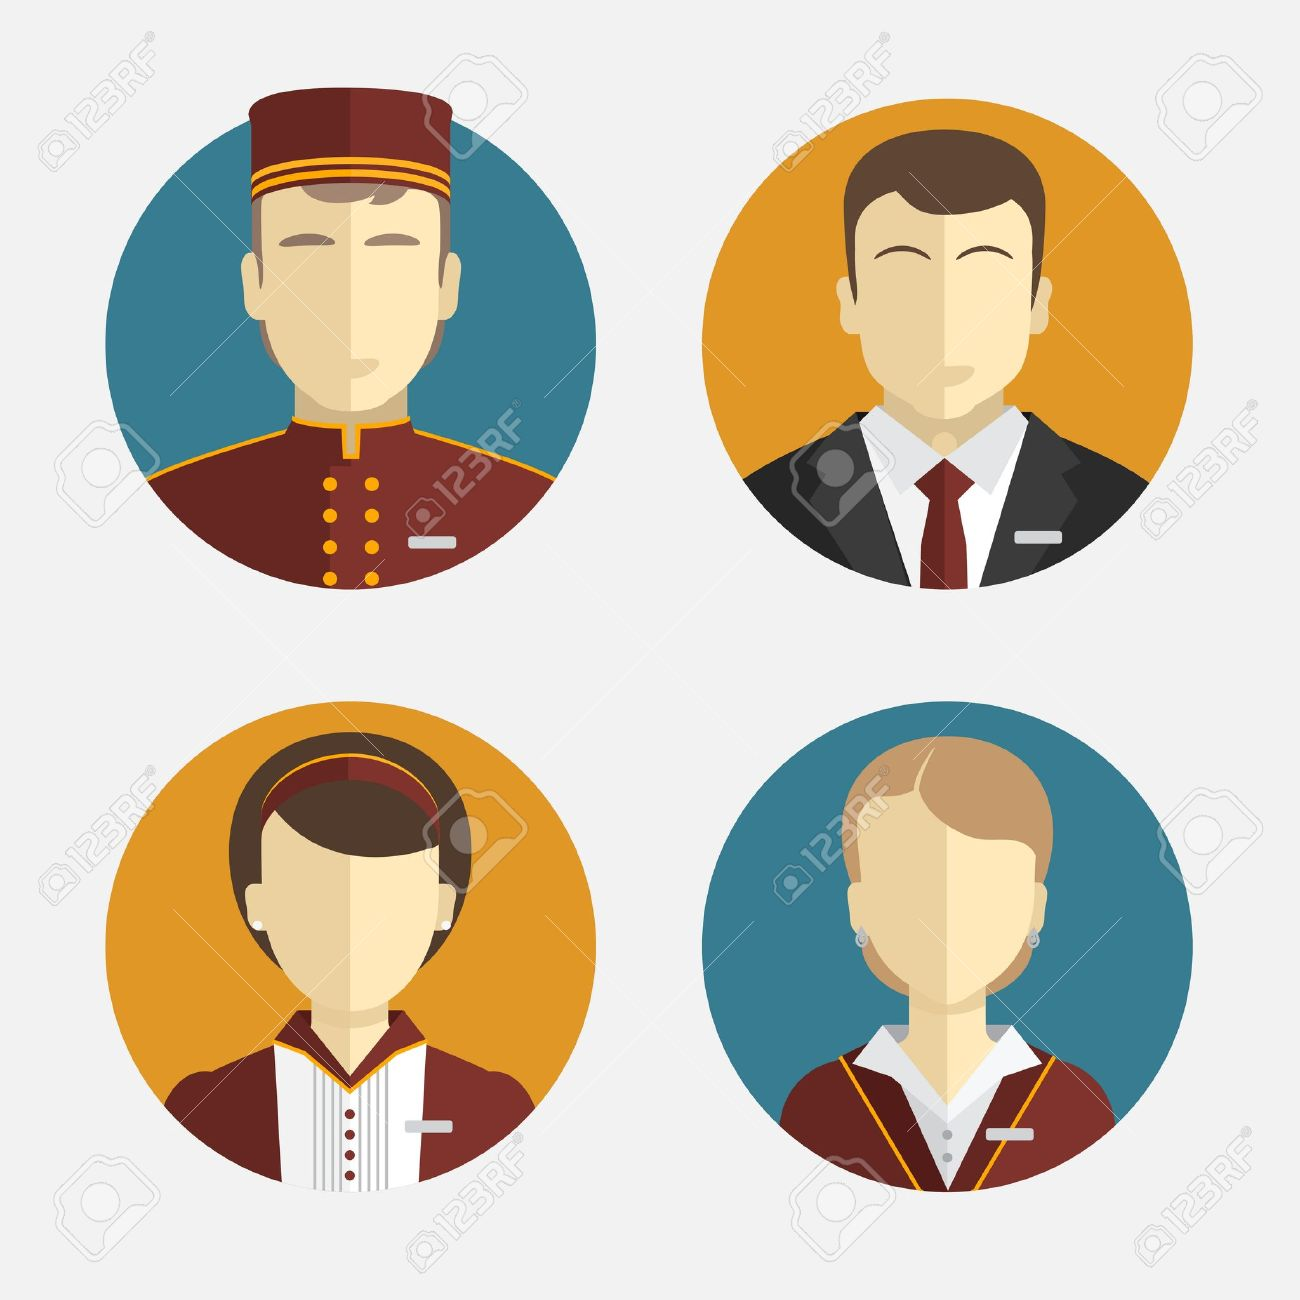 Avatars people. The hotel staff. Reception, curtains, maid manager. - 37202340